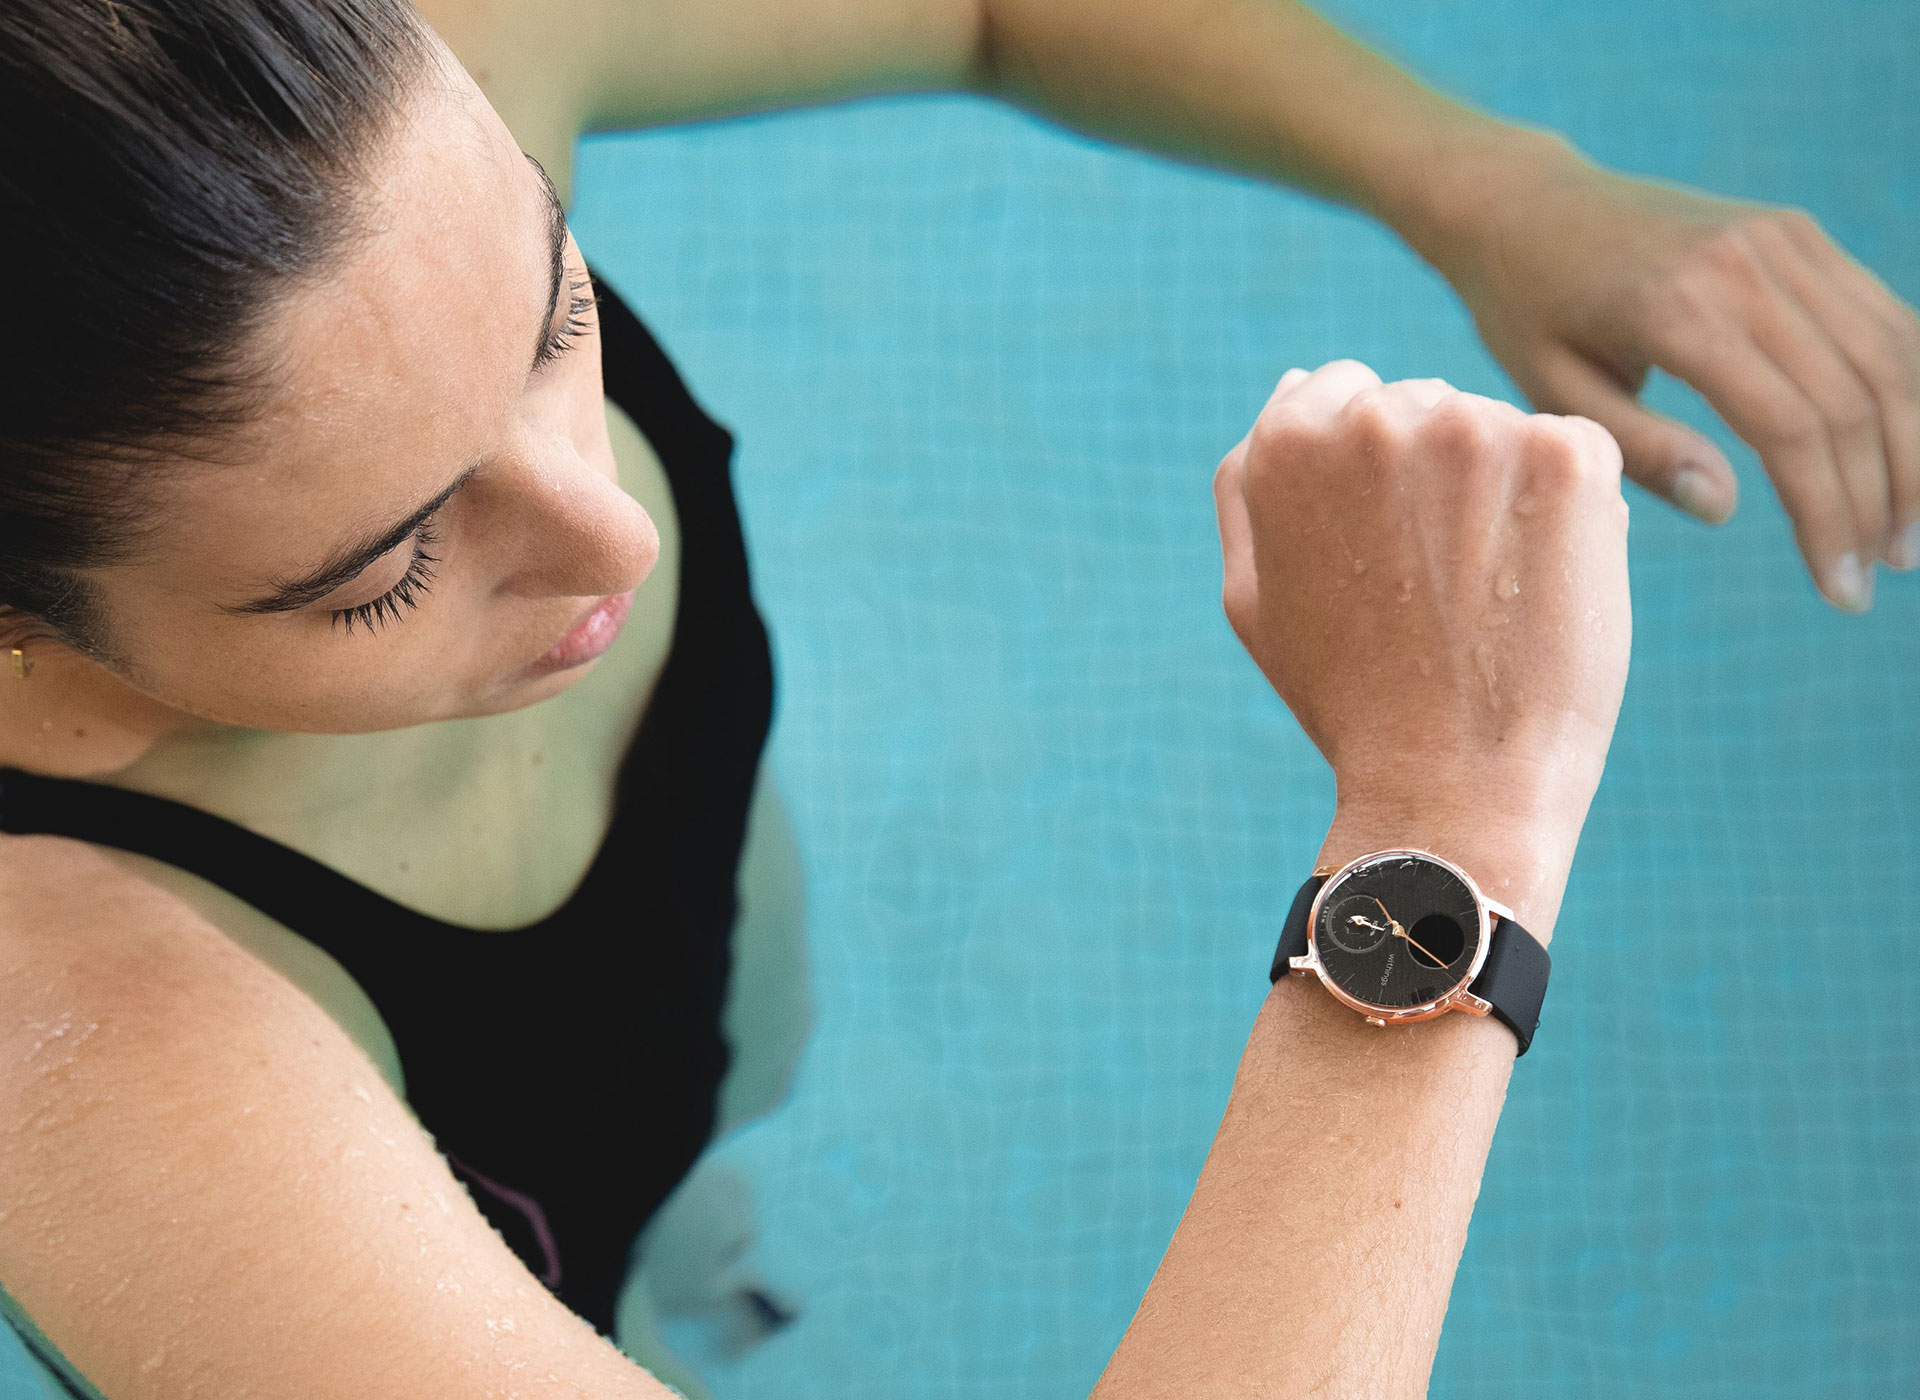 Withings: From Nokia acquisition to $60m funding round